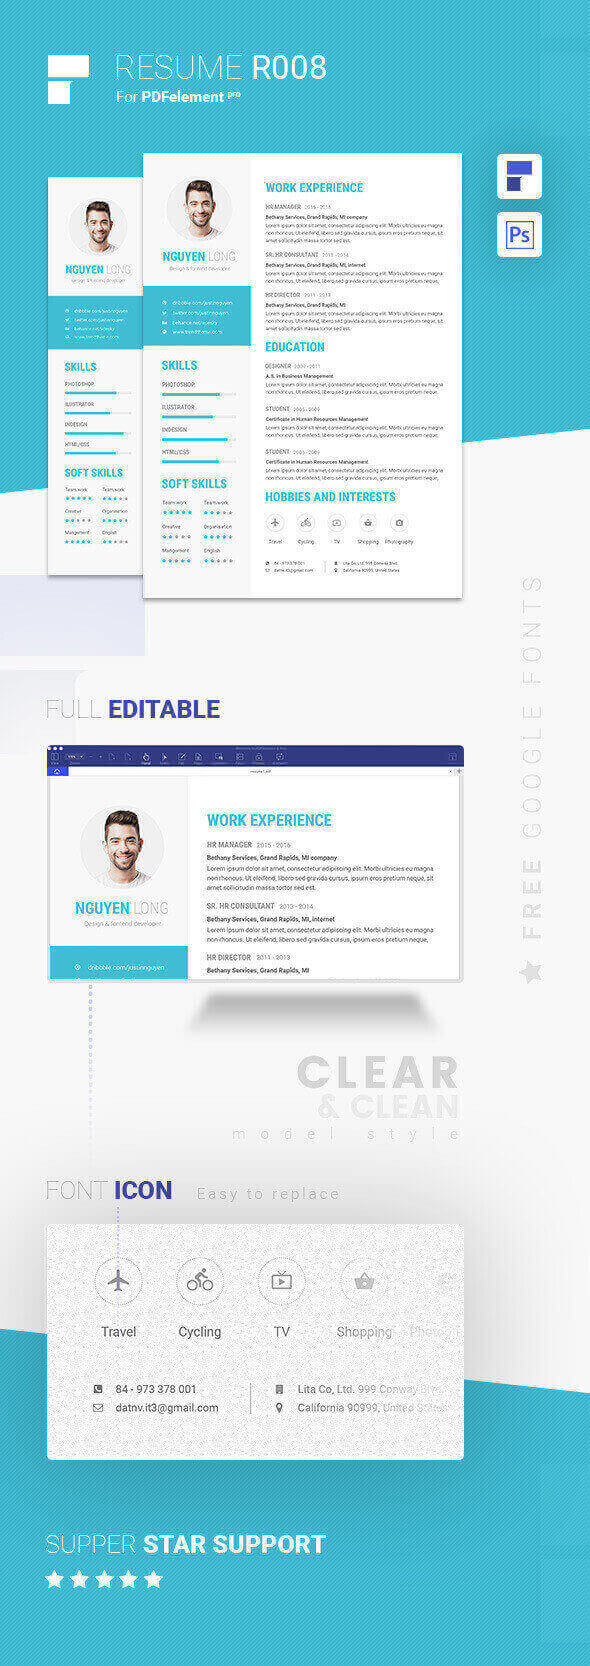 Resume Template - Skyblue Pro